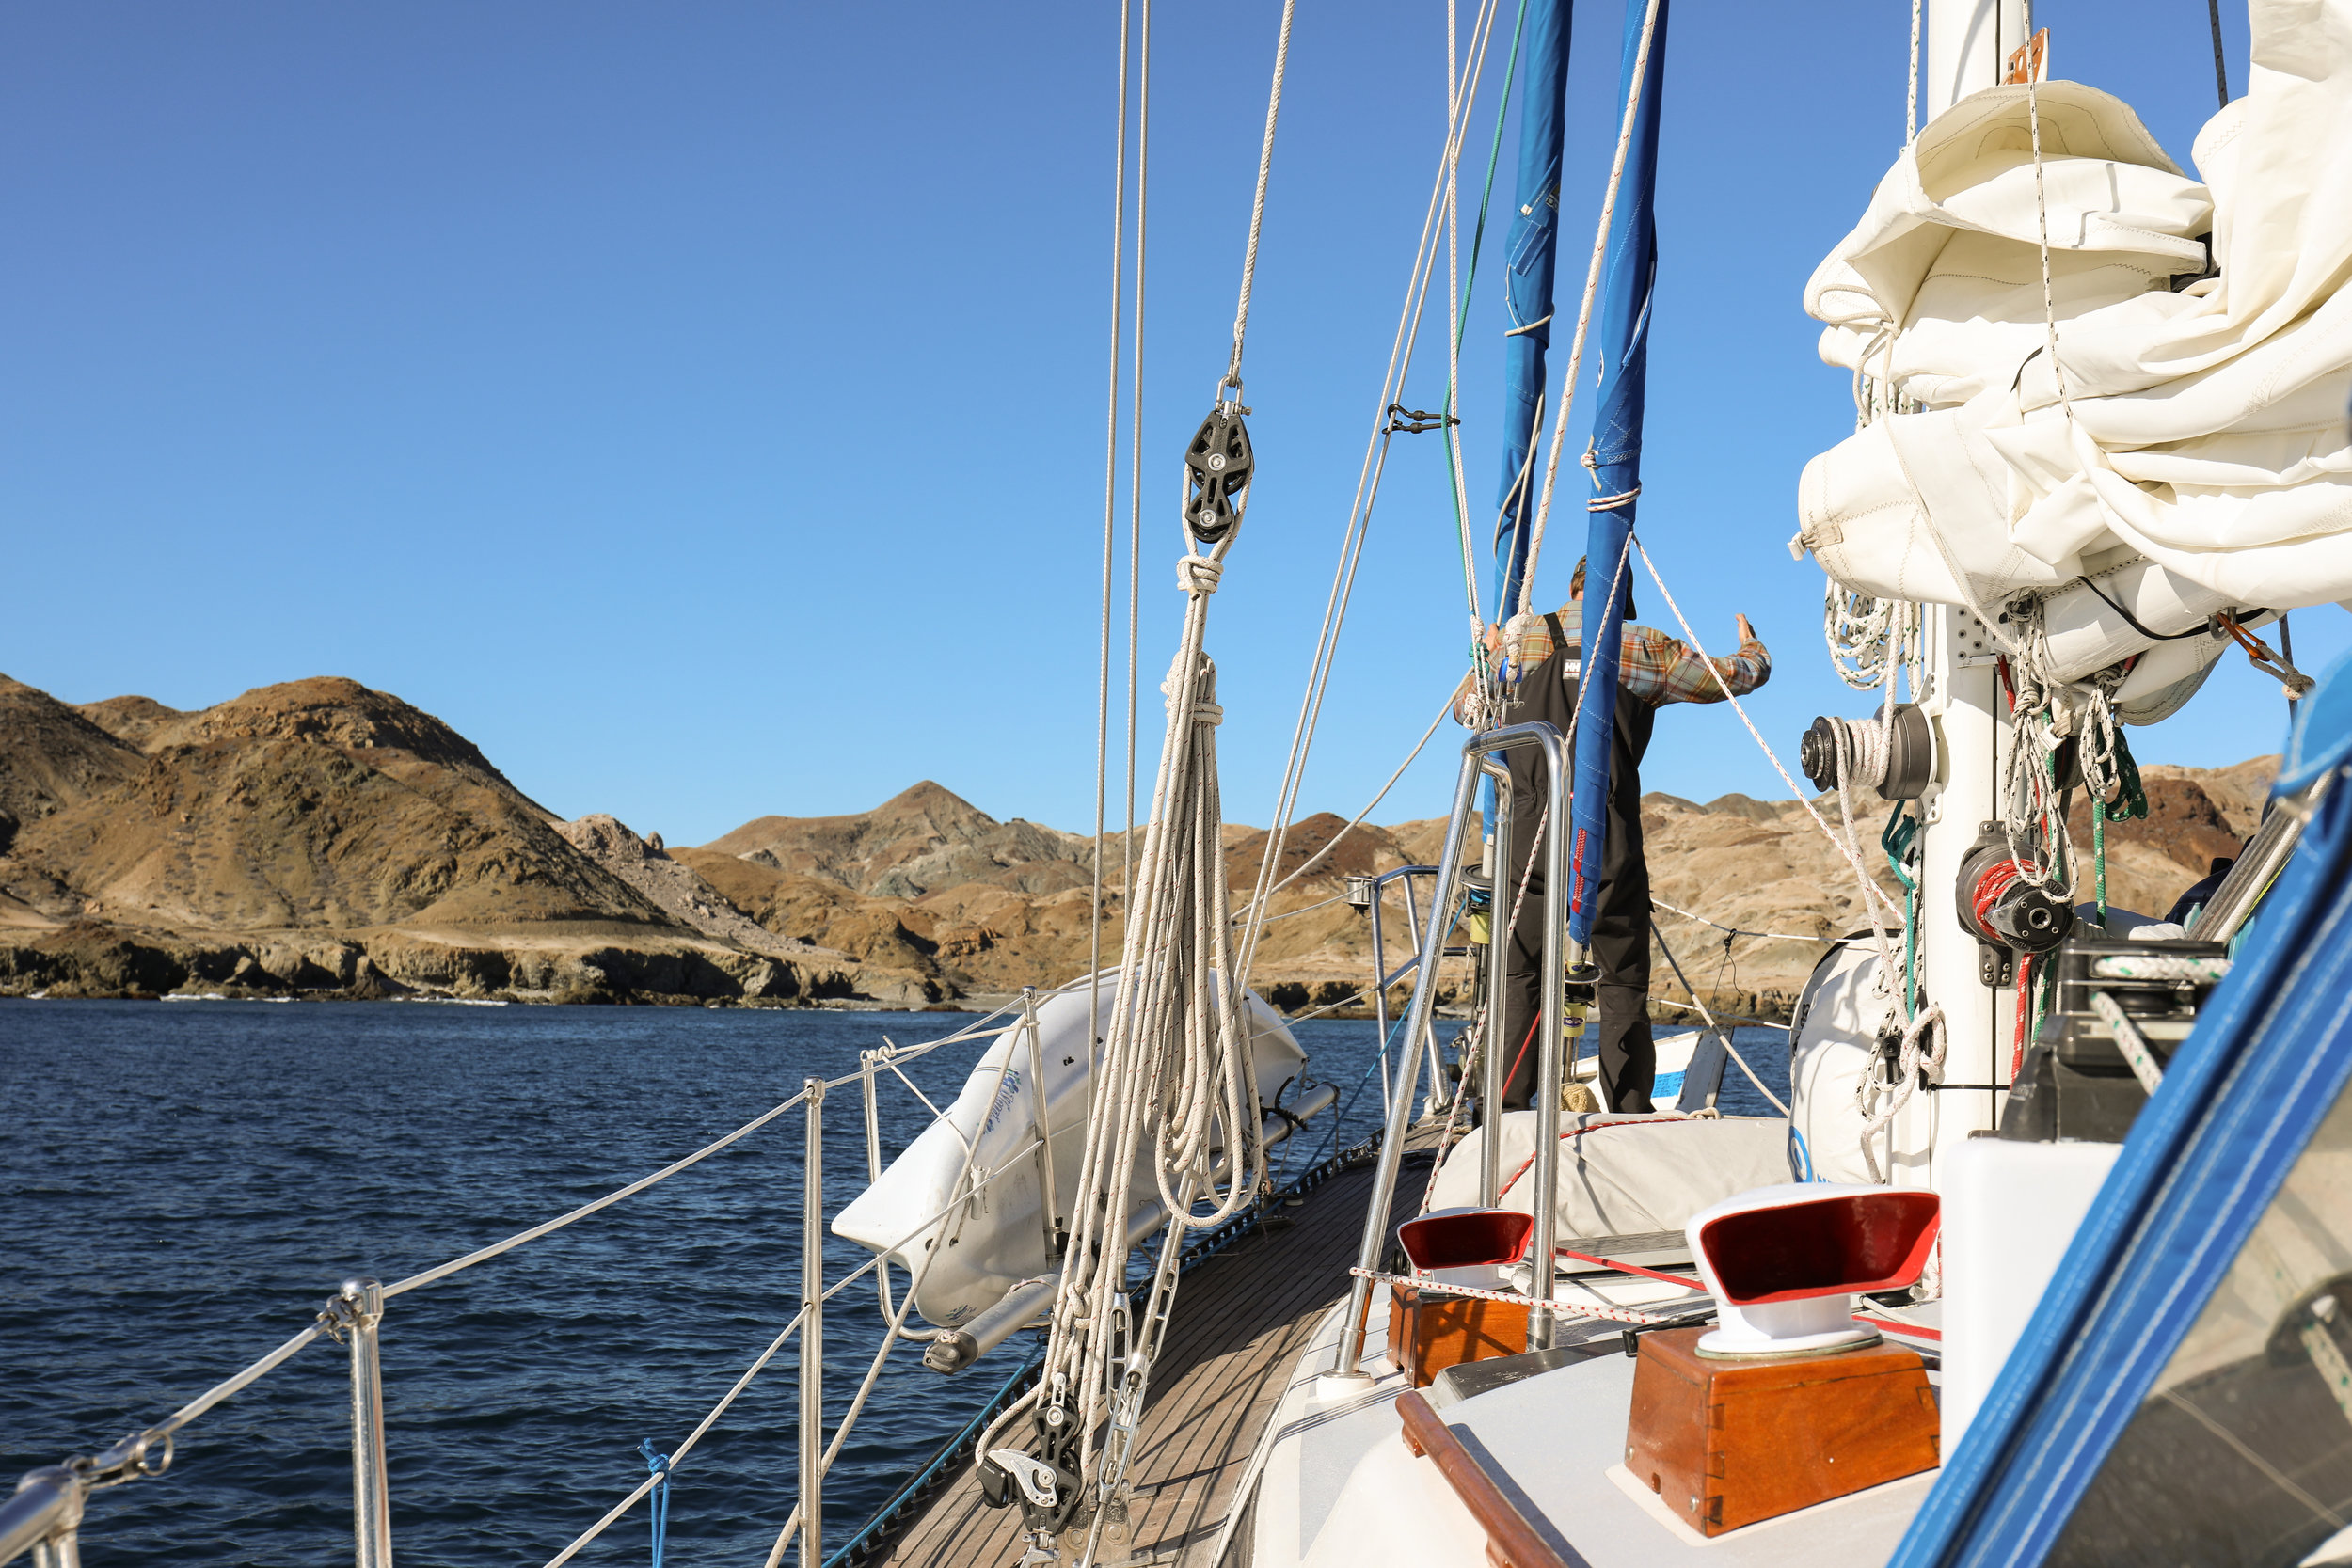 Trying to set the hook in the rocky southern anchorage of Cedros Island.